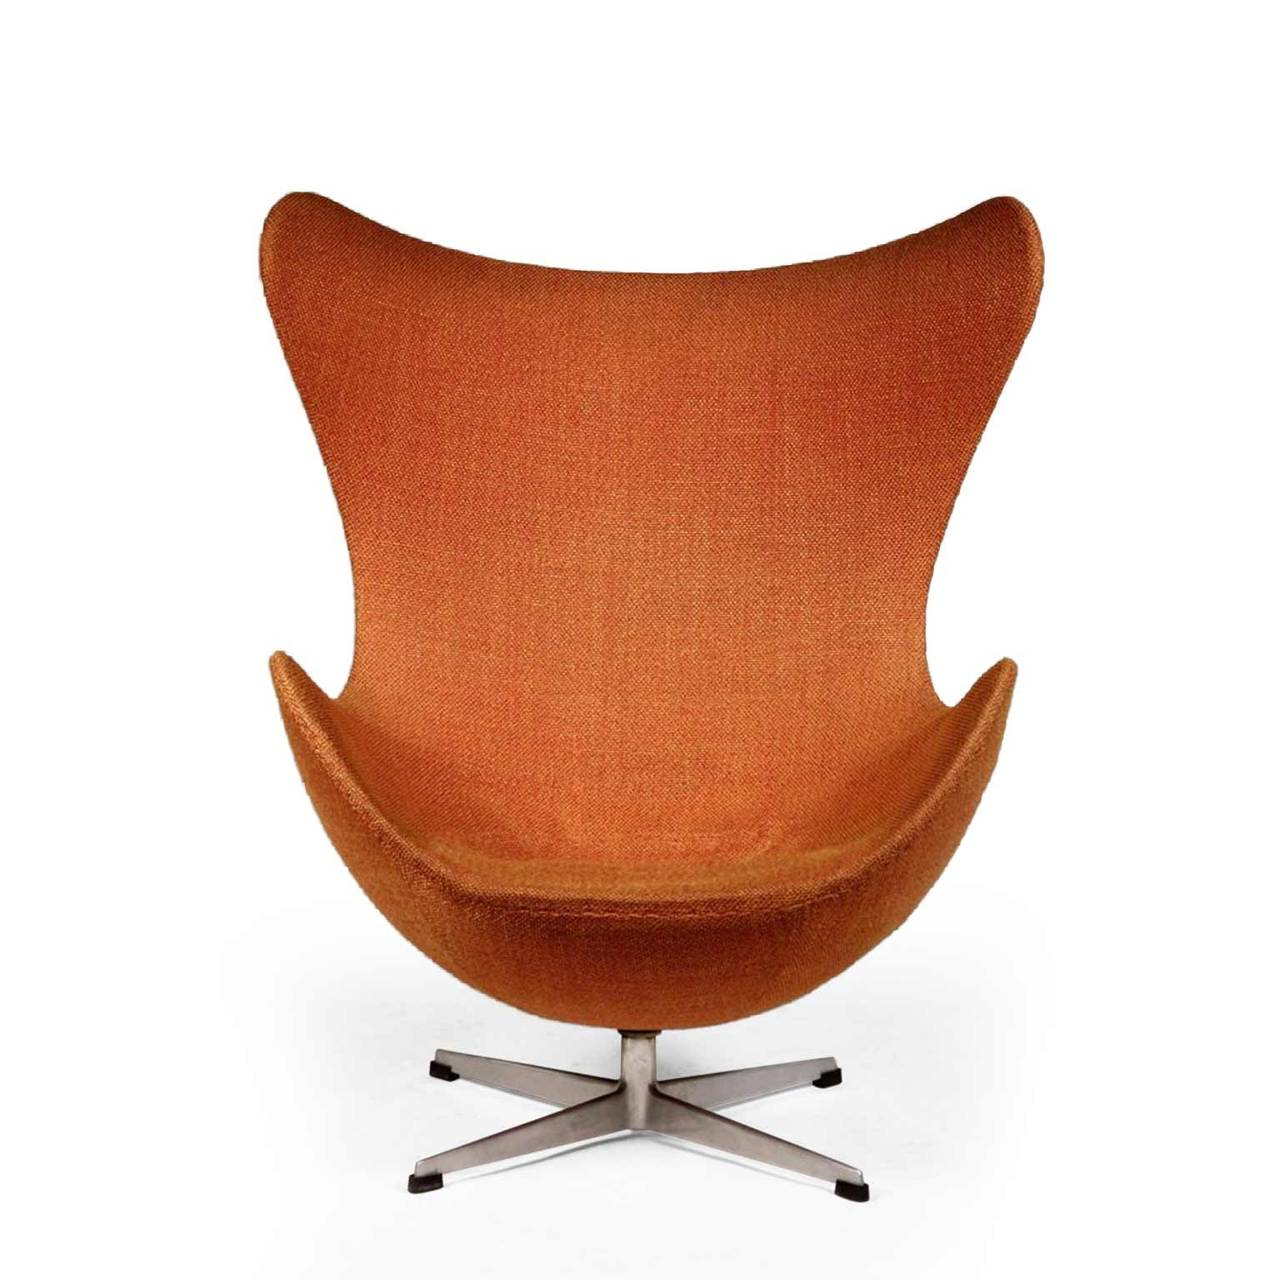 arne jacobsen egg chair for sale at 1stdibs. Black Bedroom Furniture Sets. Home Design Ideas